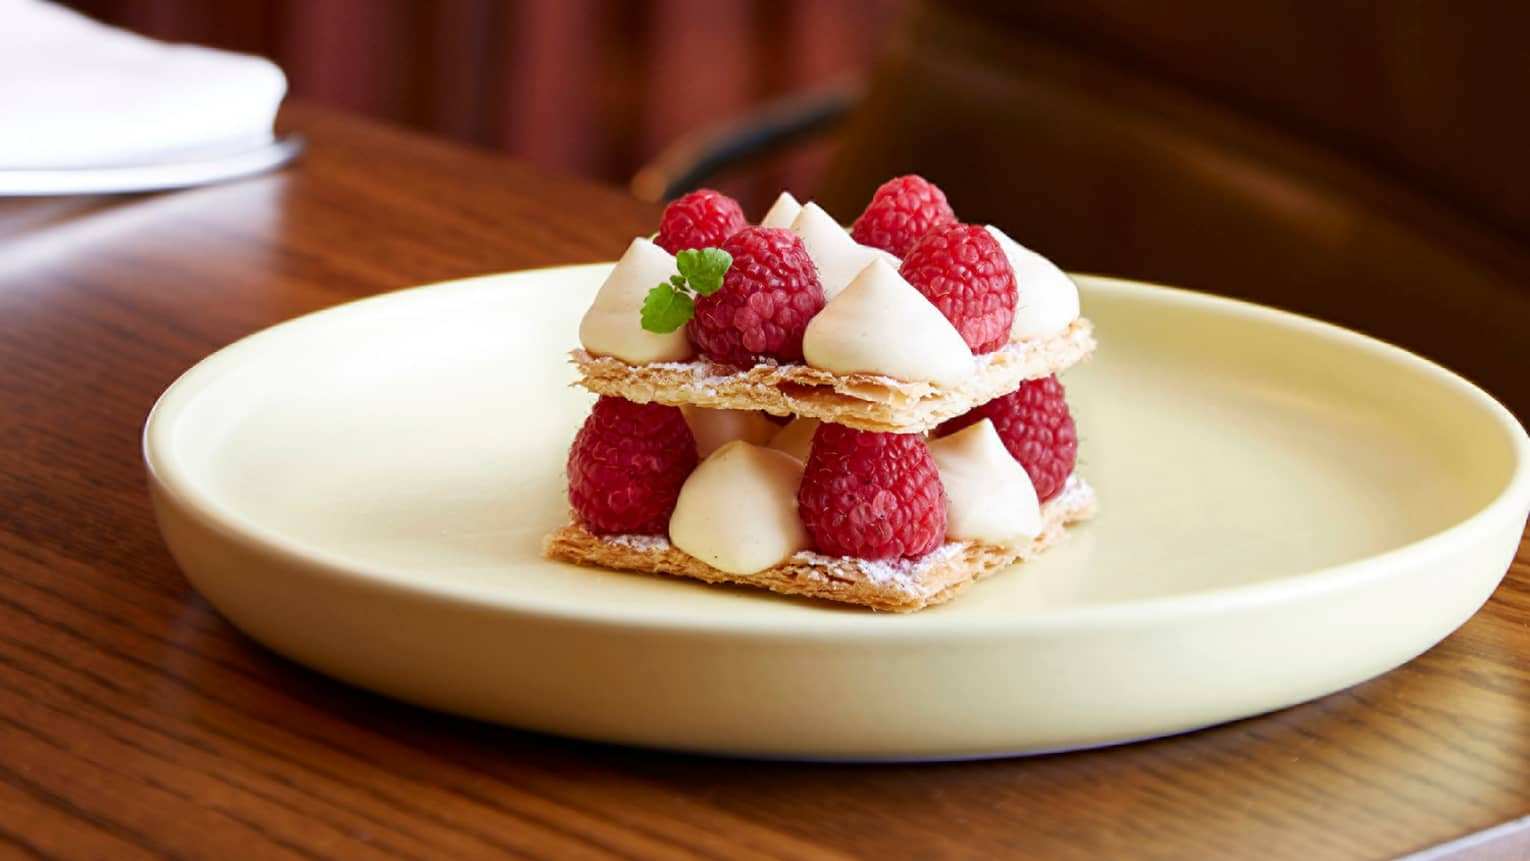 Millefeuille custard dessert with chantilly cream, fresh raspberries on plate